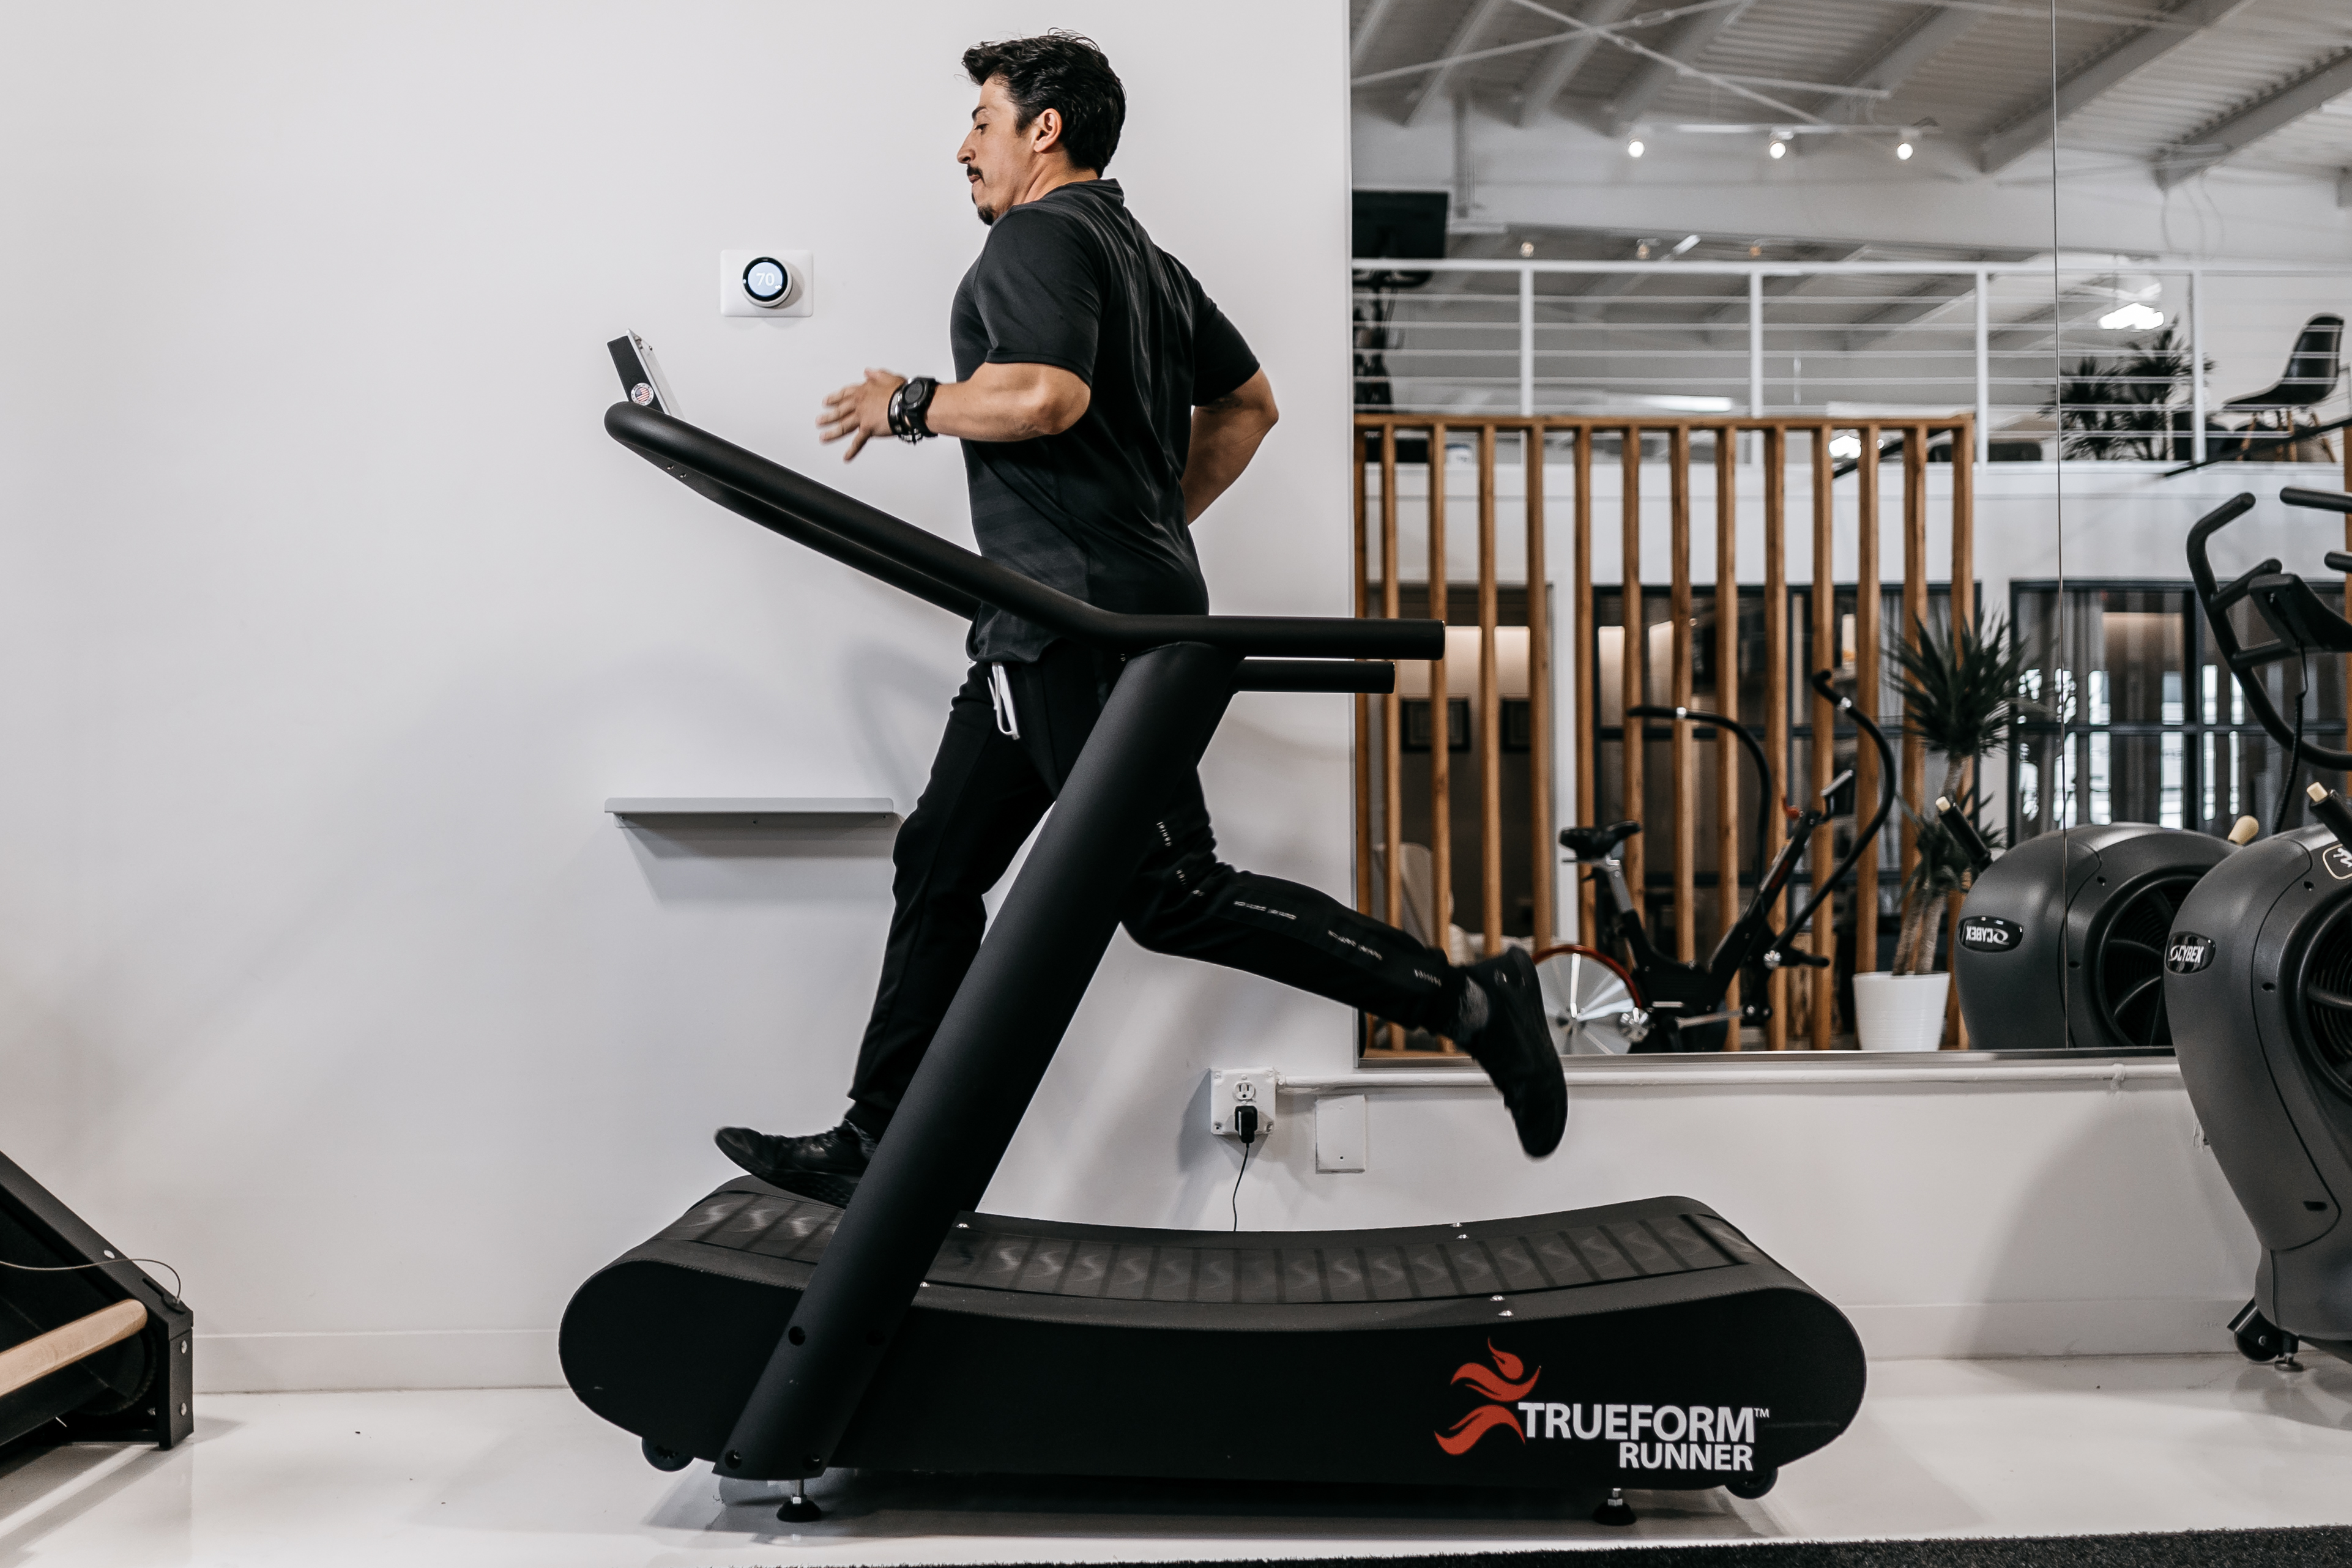 trueform runner machine Driven + SWS Tampa Personal Trainer